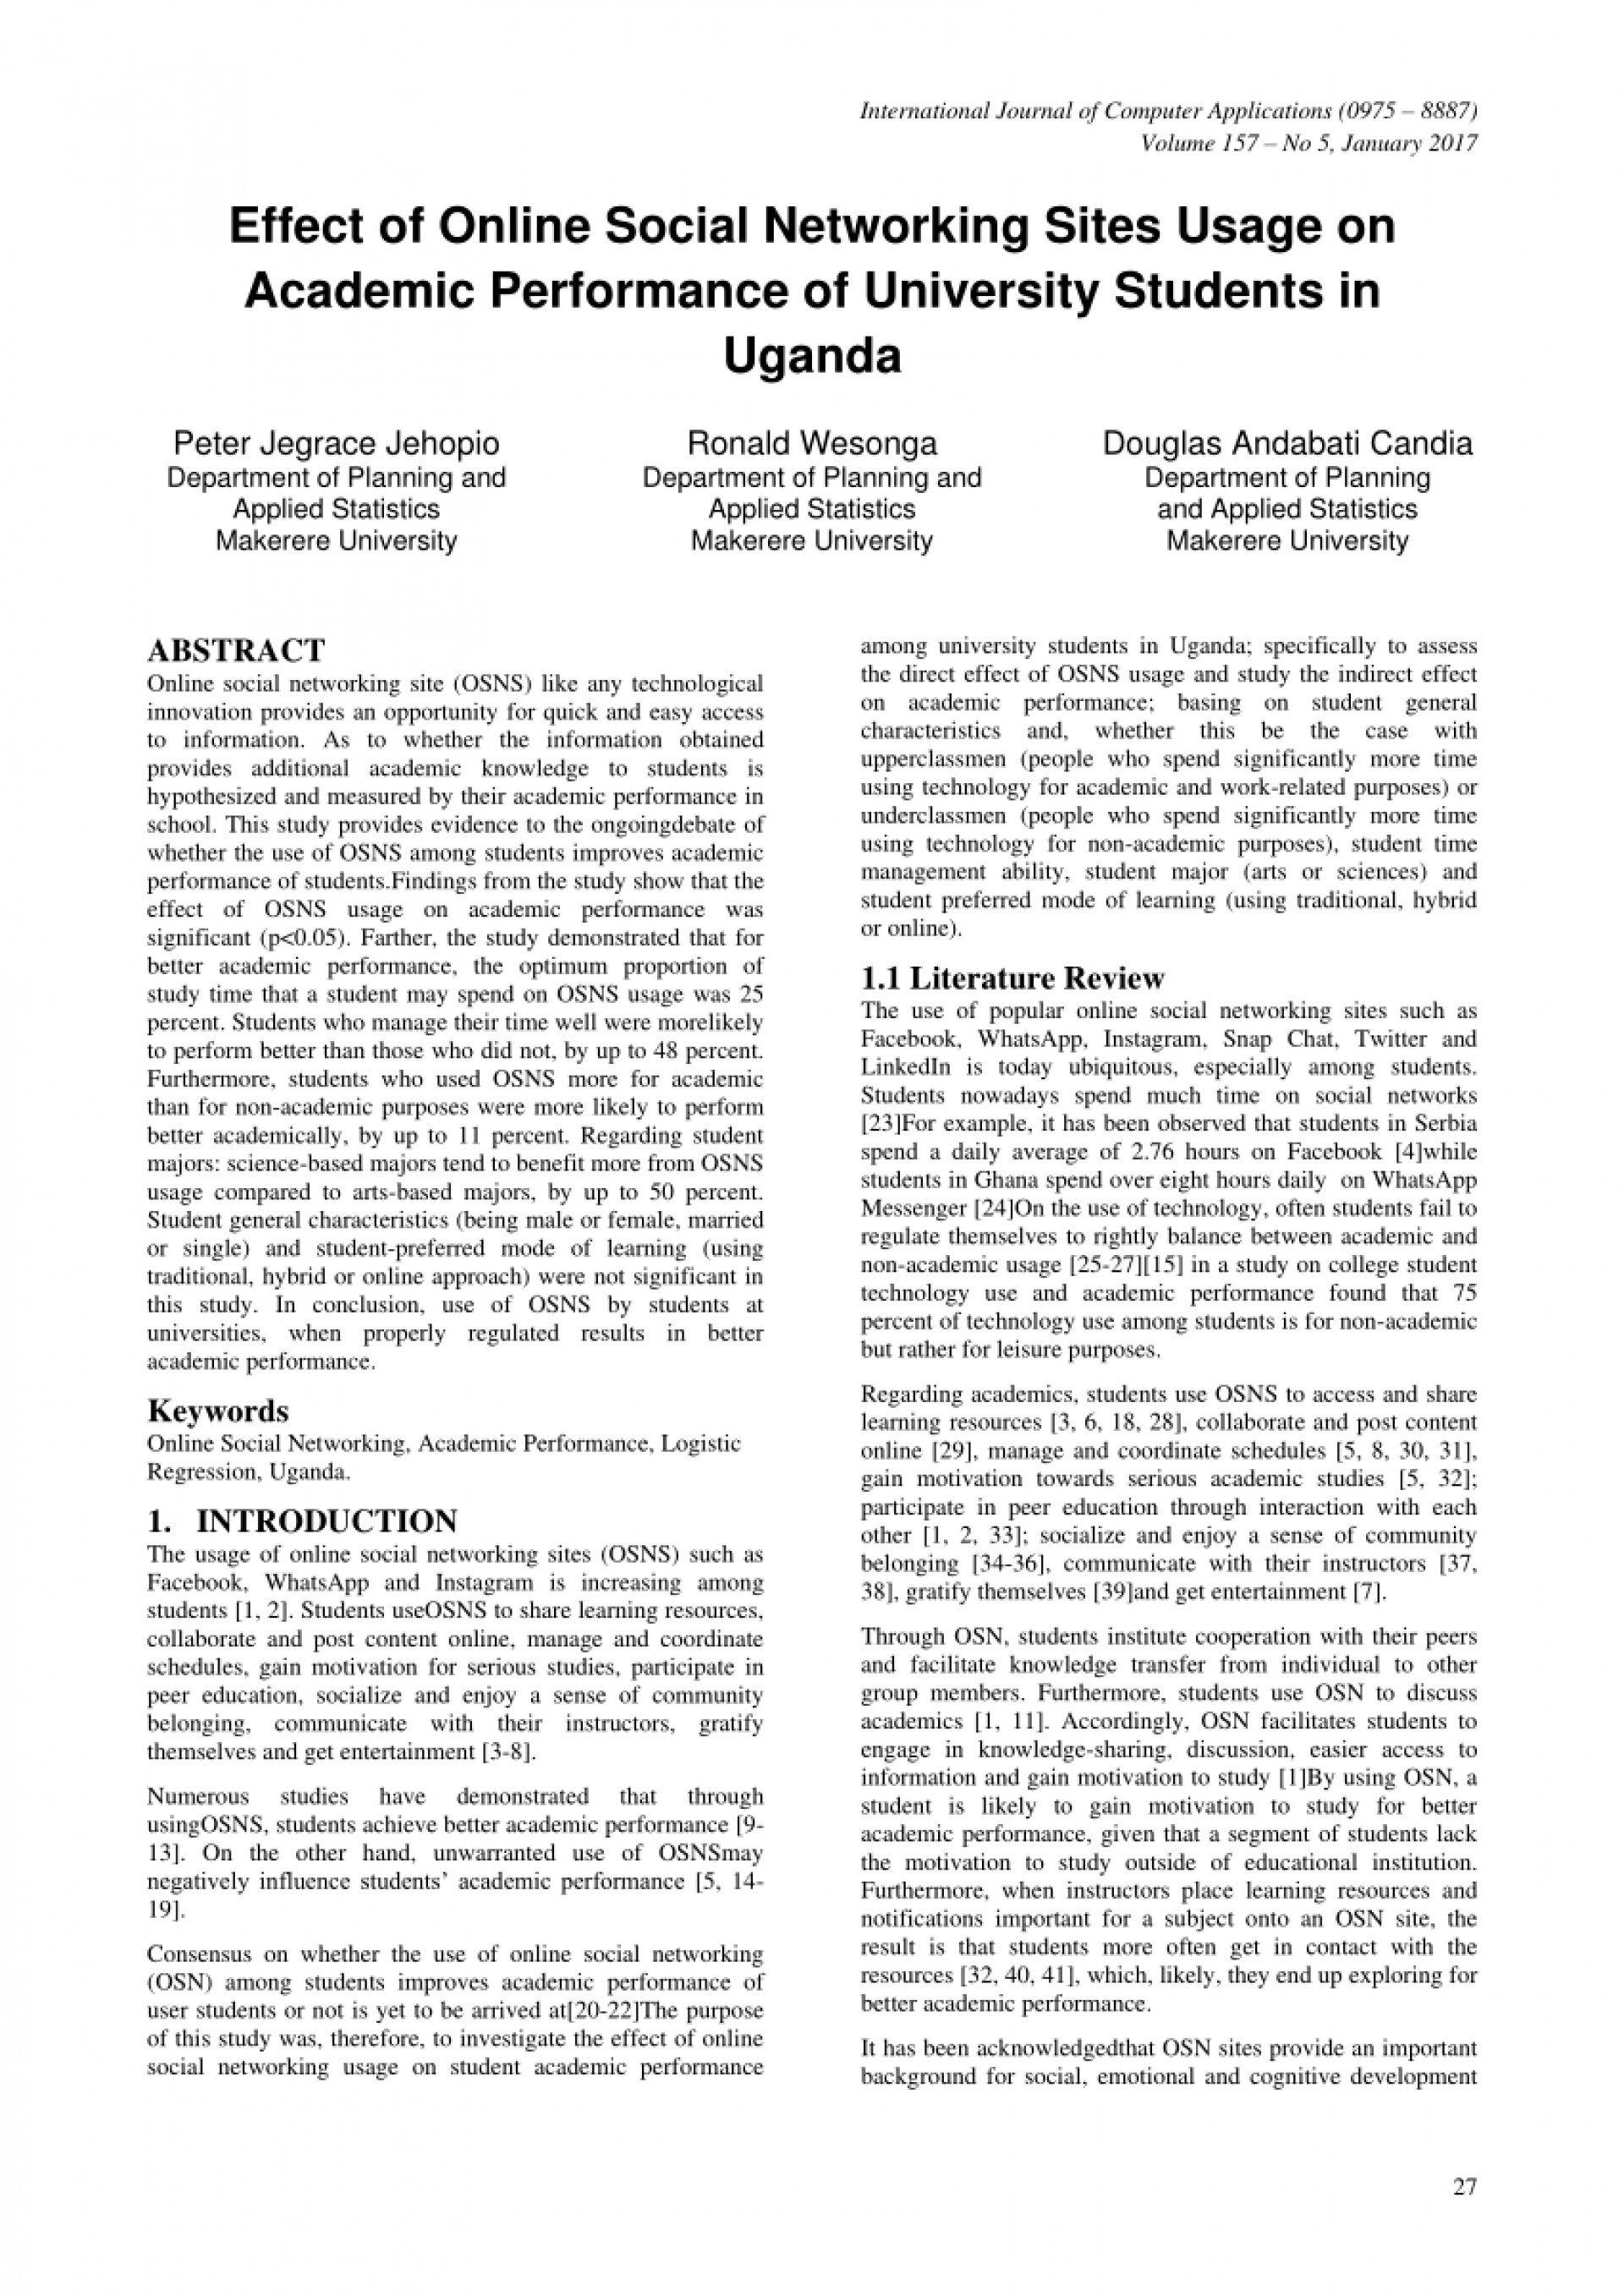 006 Conclusion For Research Paper About Social Media Awful 1920